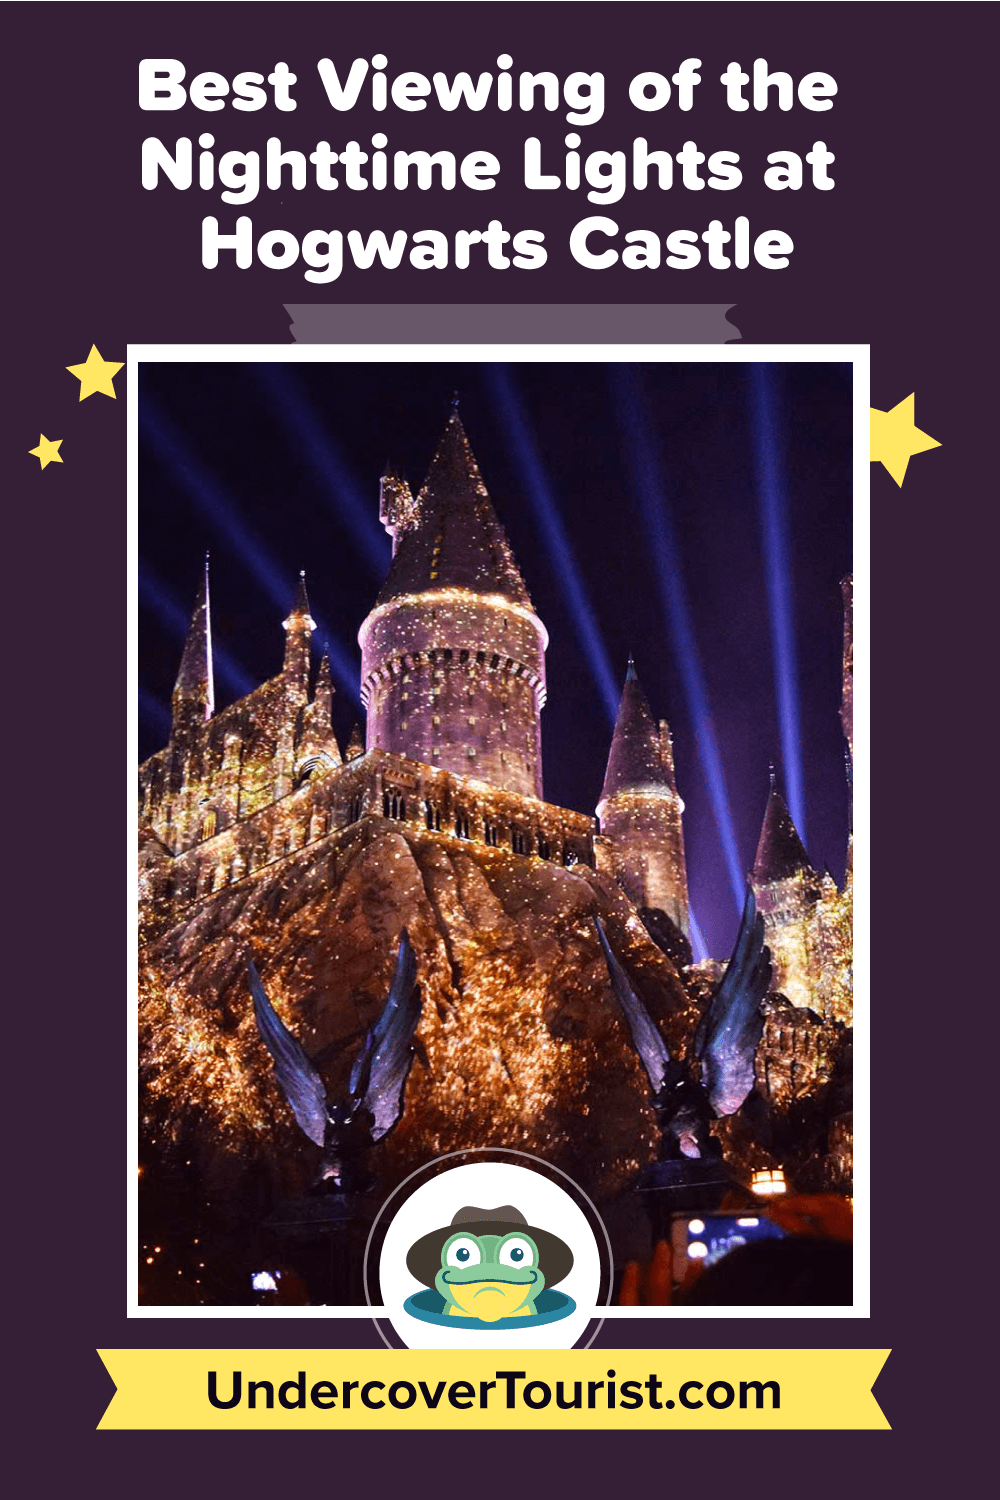 The Best Viewing of the Nighttime Lights at Hogwarts Castle